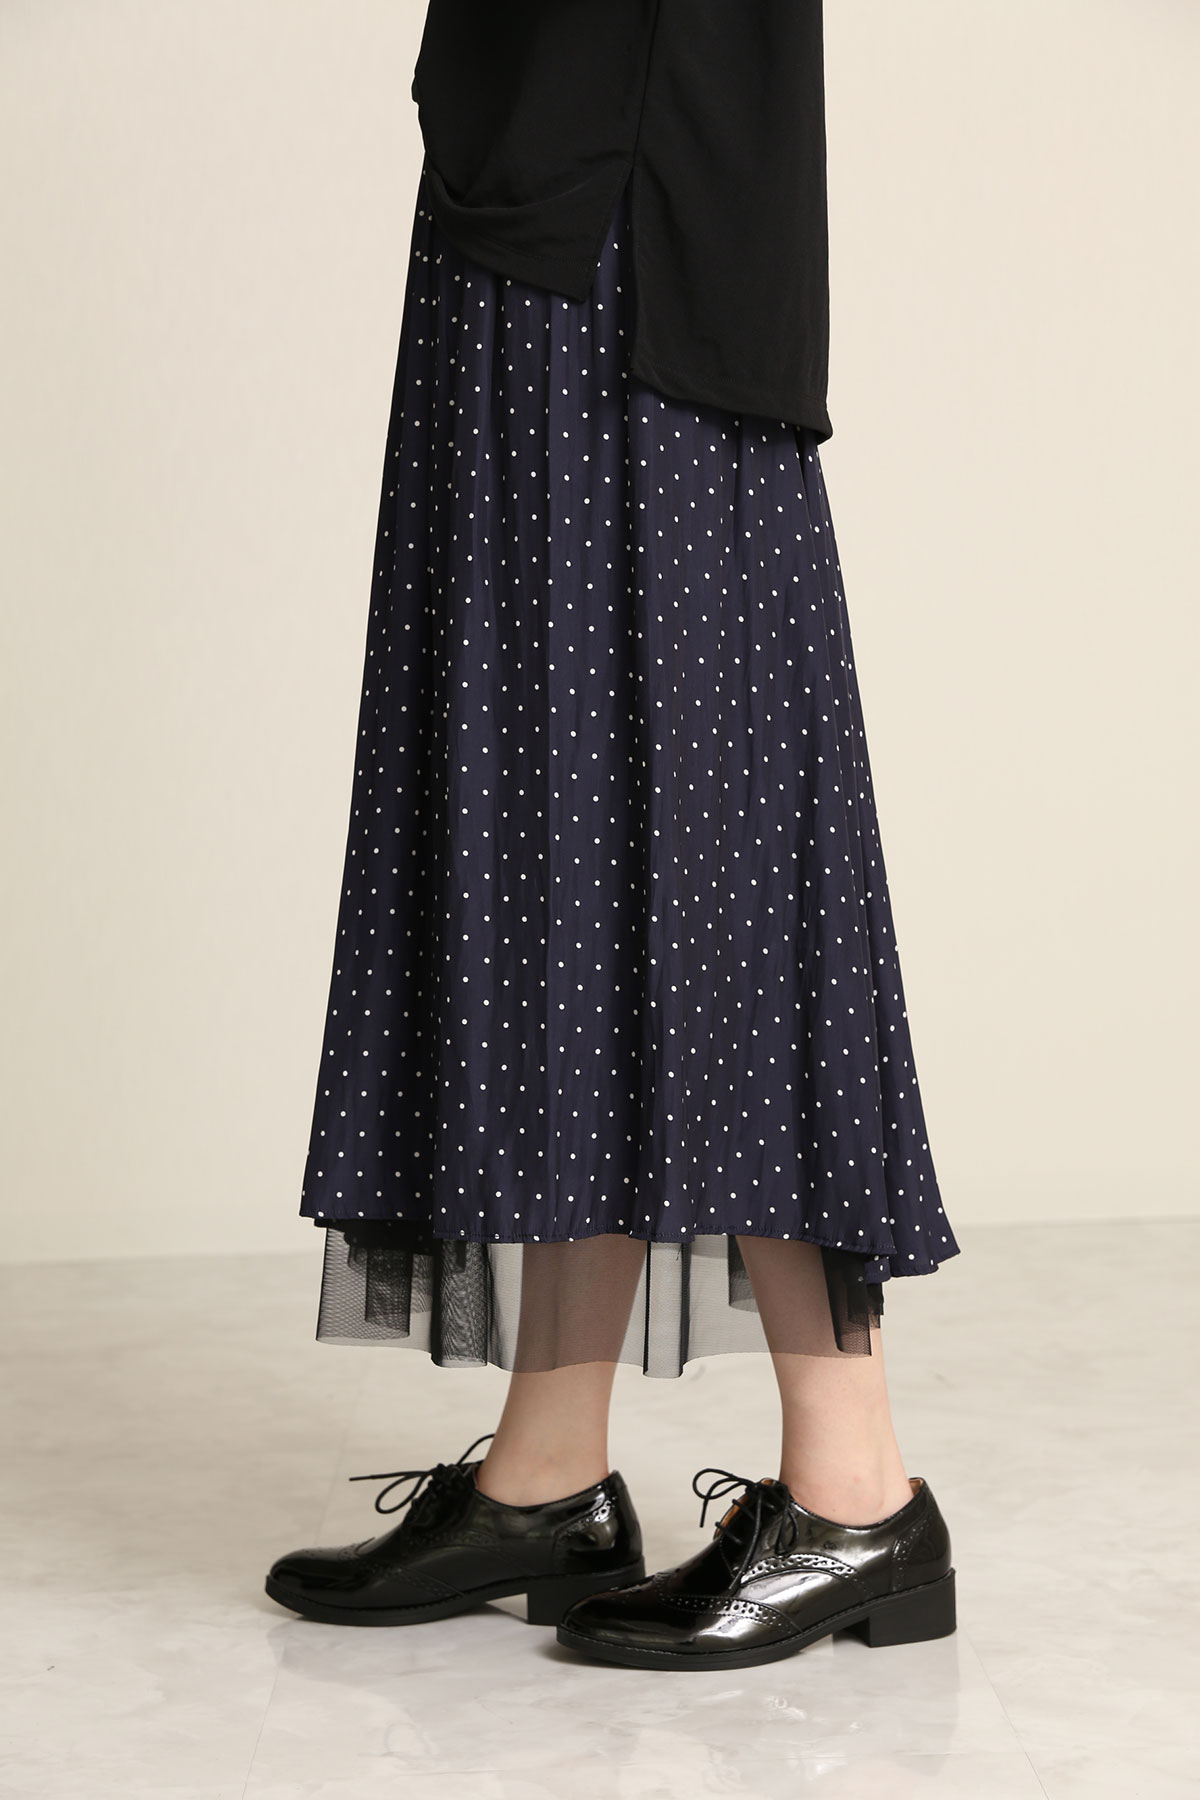 BO21-112K-navydot Polkadot Ordinary de Chine Dairy/Dinner Skirt -NAVY DOT-【BO21-112K】Del.Aug.